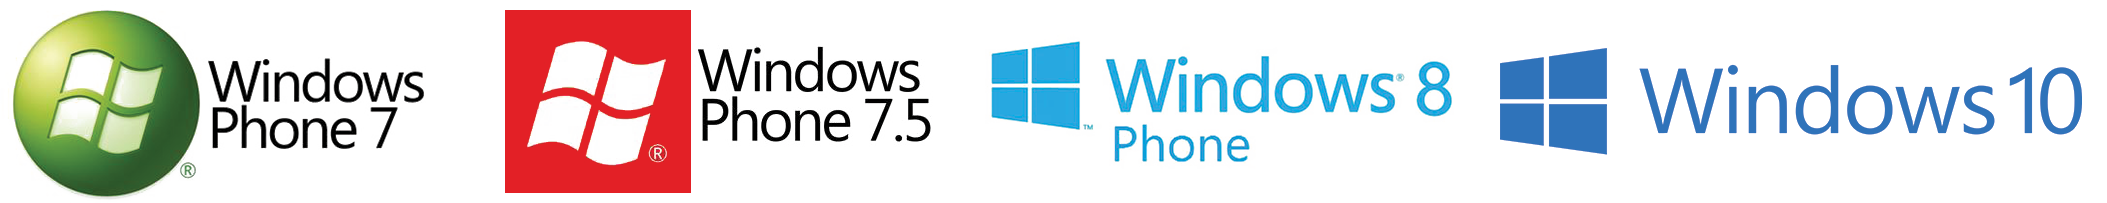 windows mobile logos